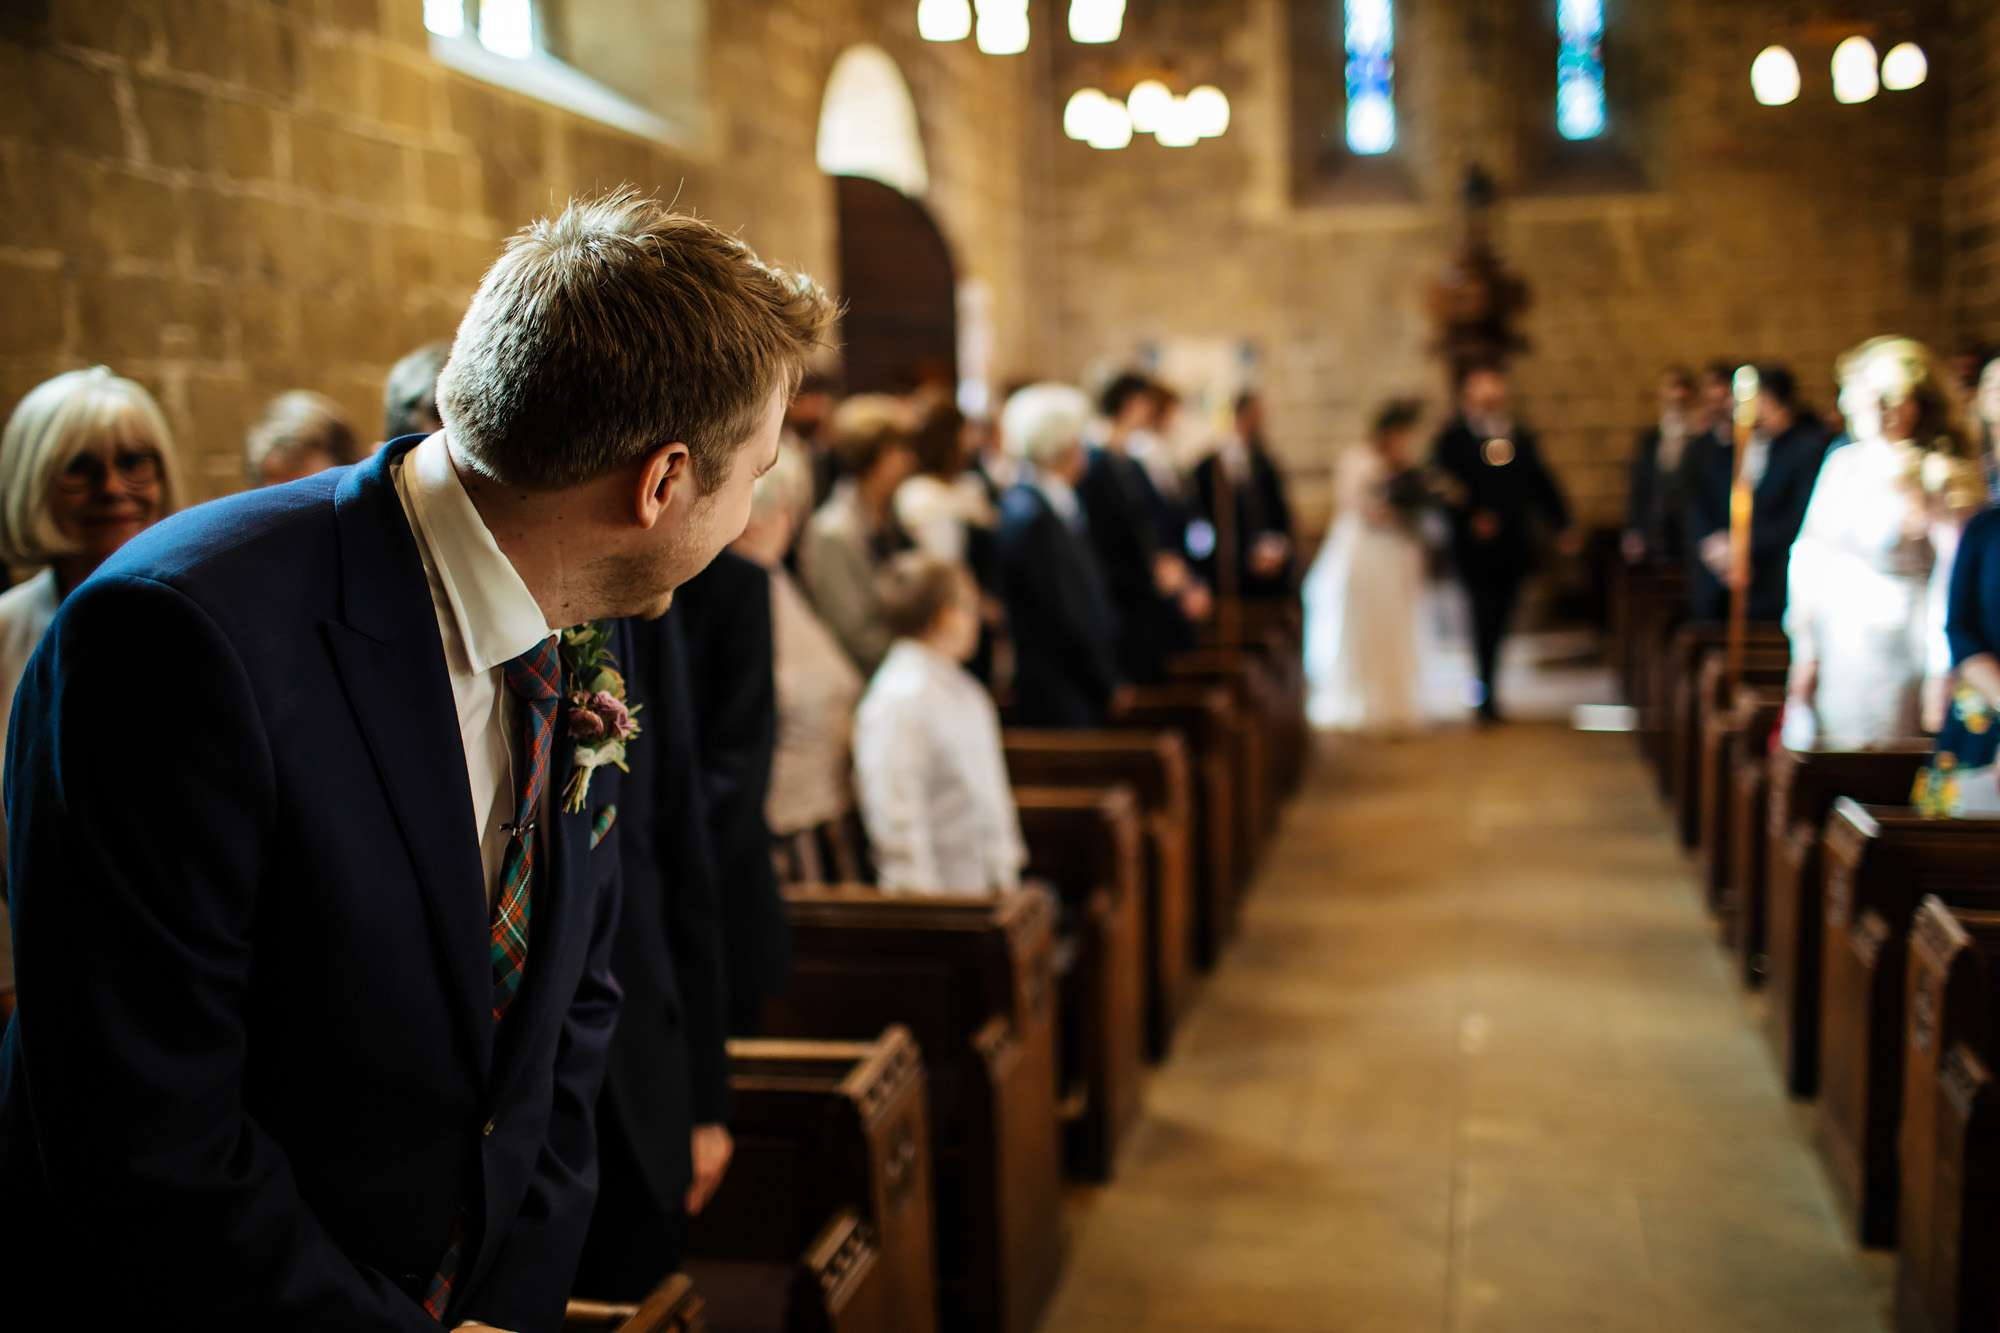 Groom sees his wife for the first time